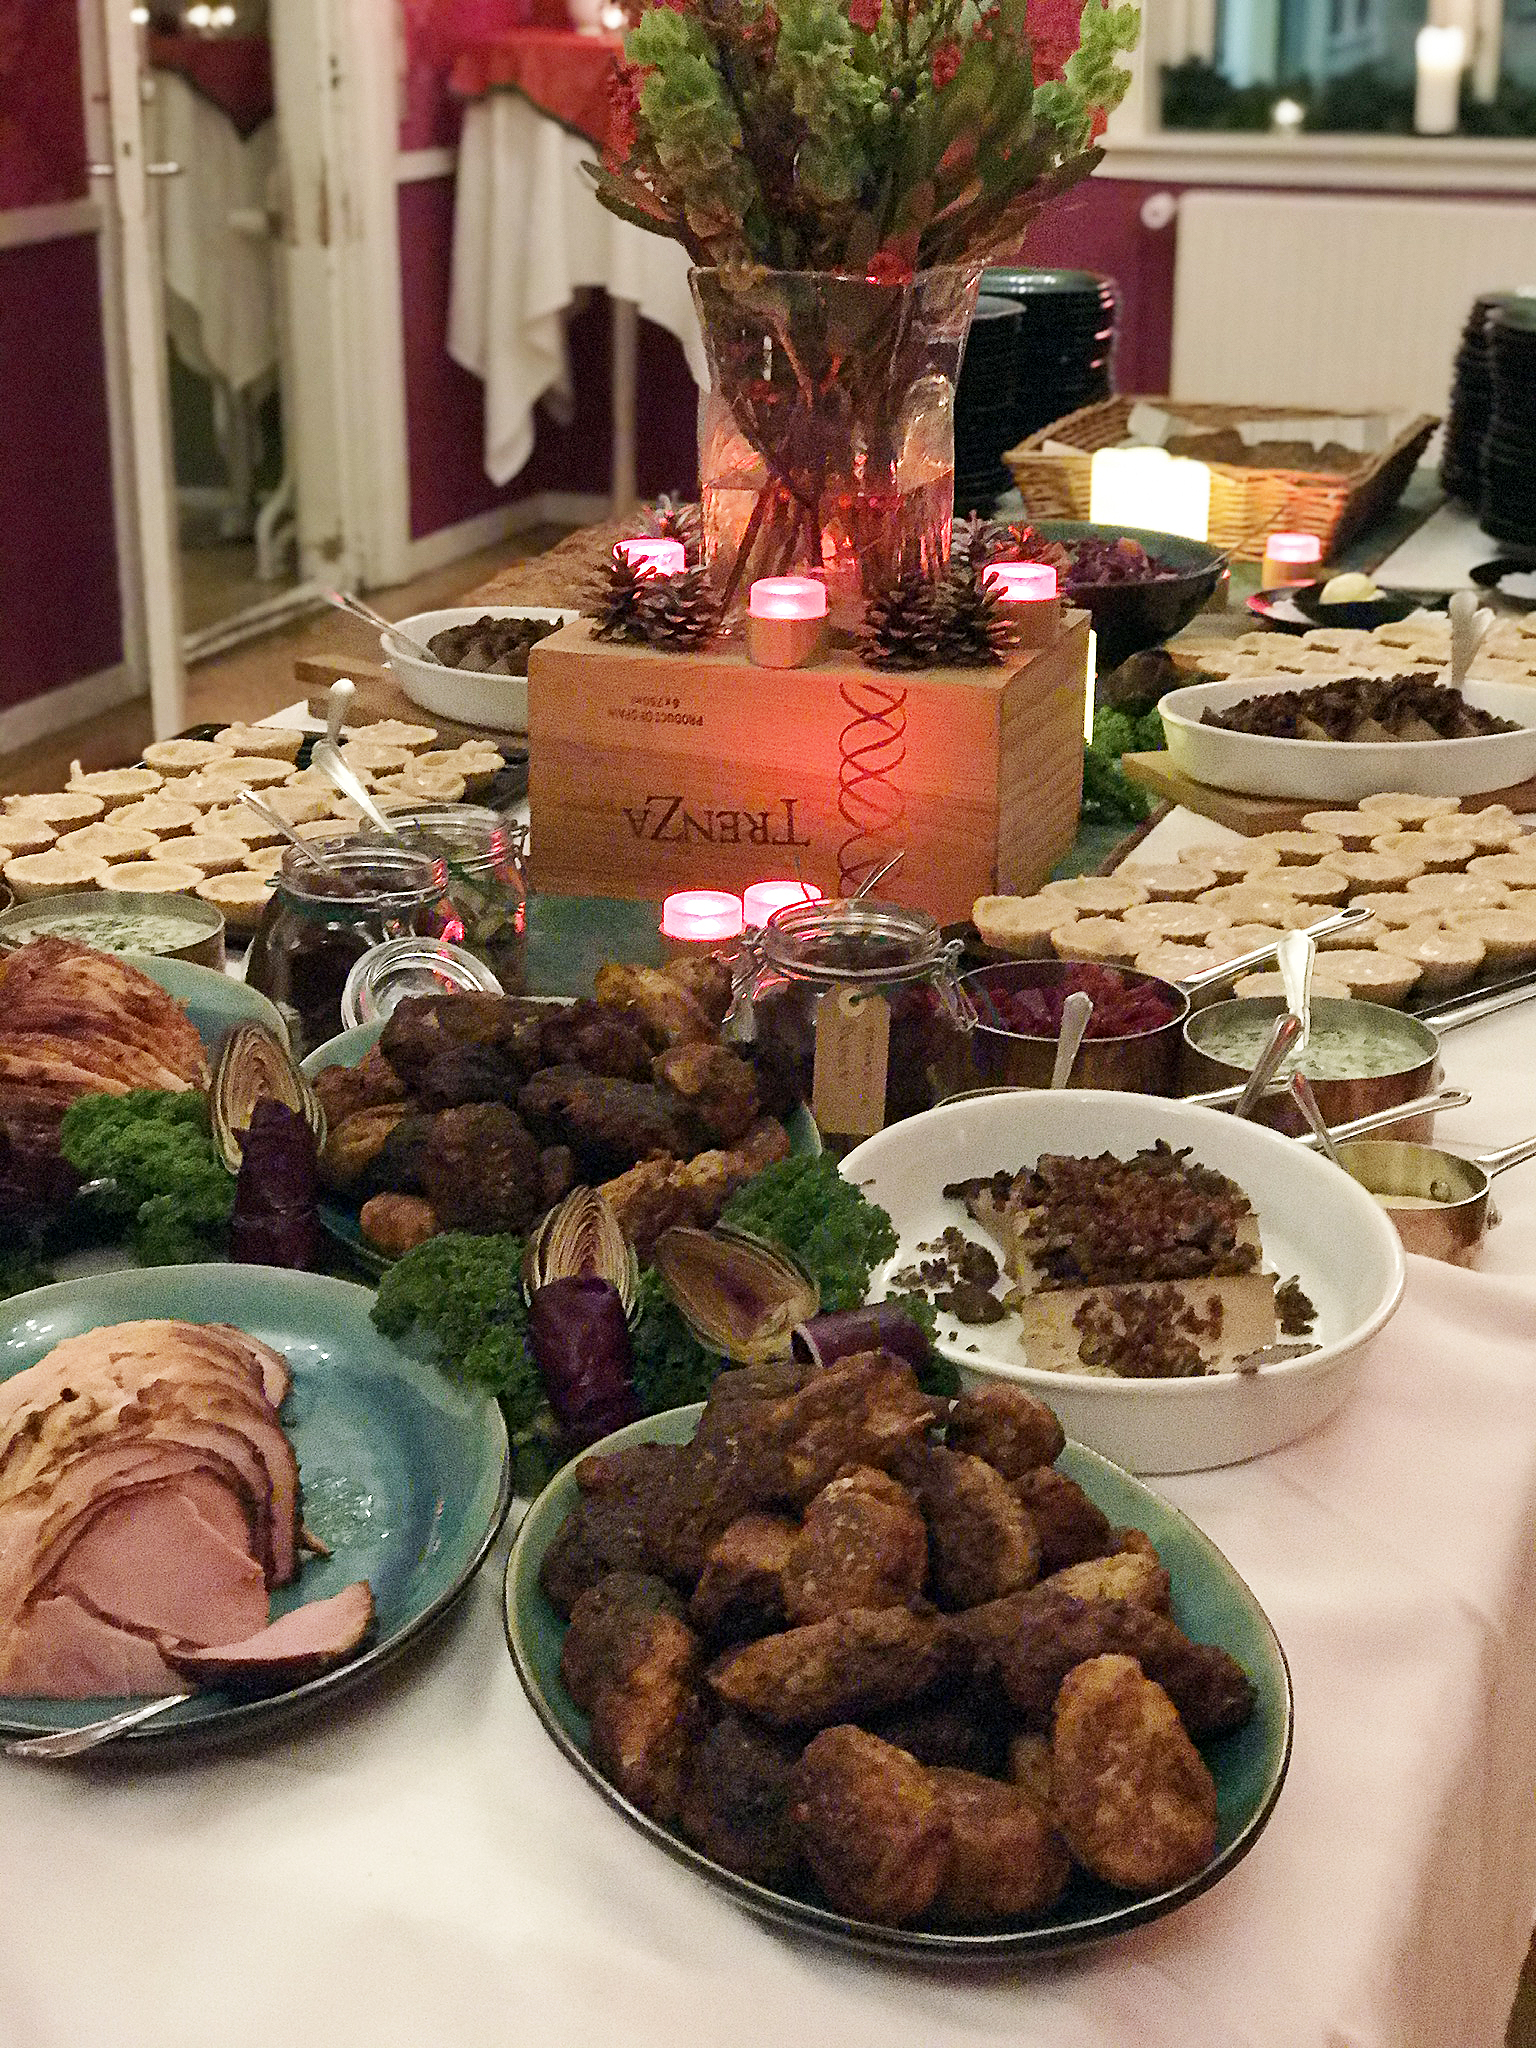 tag-selv-bord-julefrokost